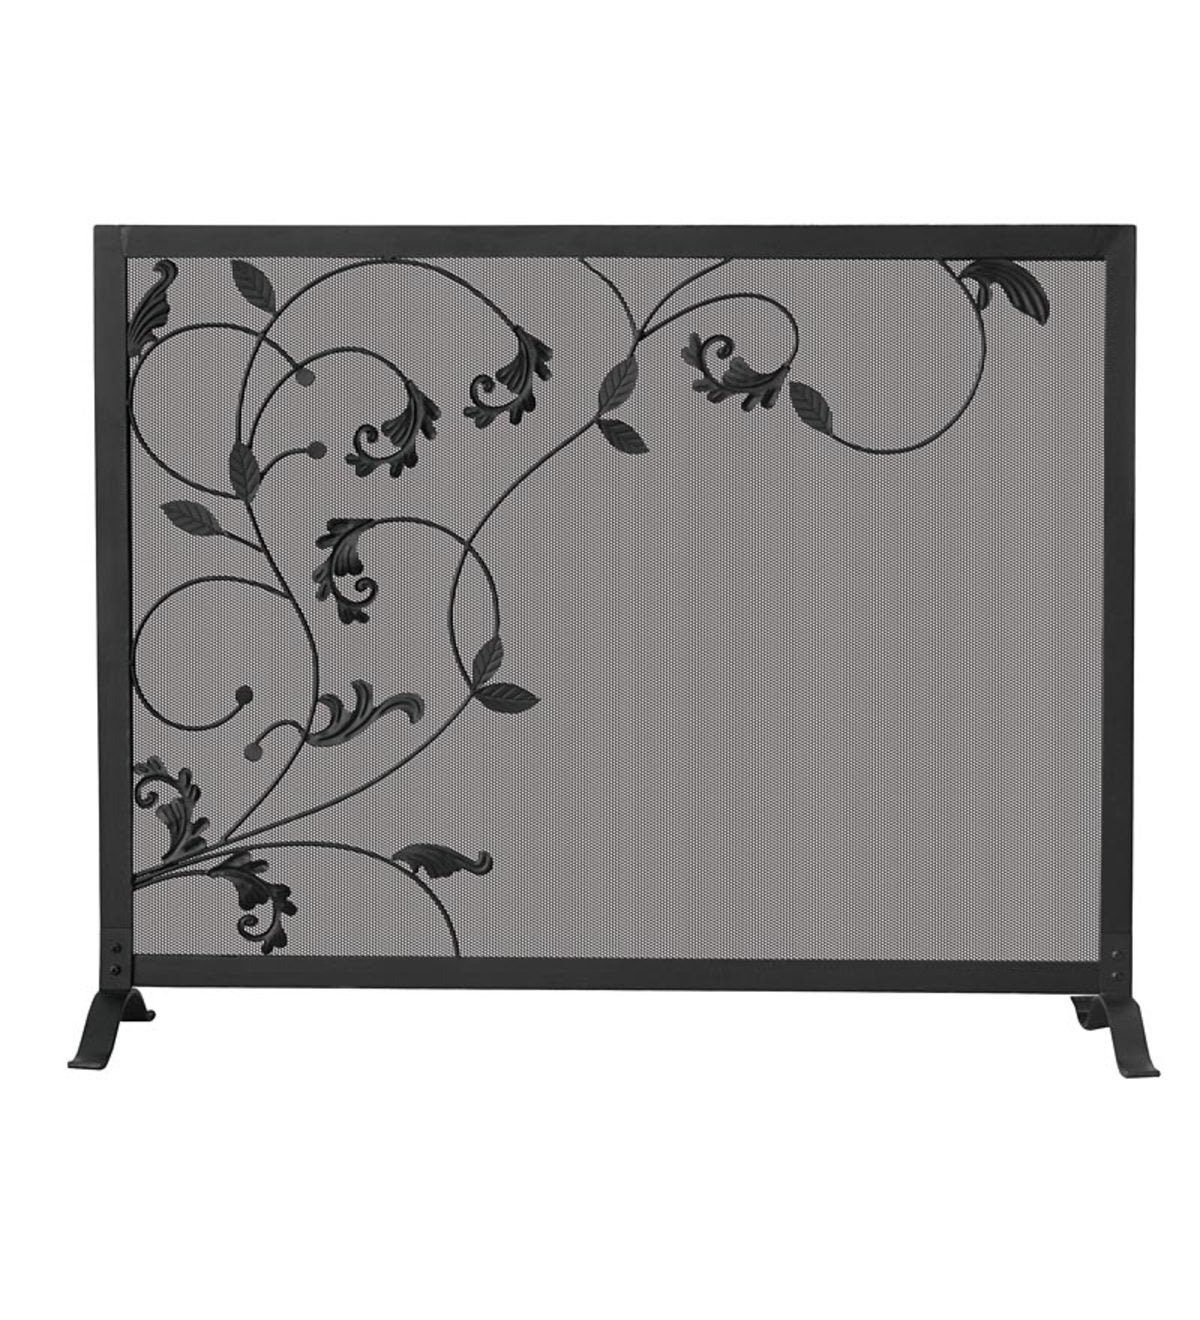 Black Wrought Iron Single Panel Fireplace Screen with Flowing Leaf Design - Black